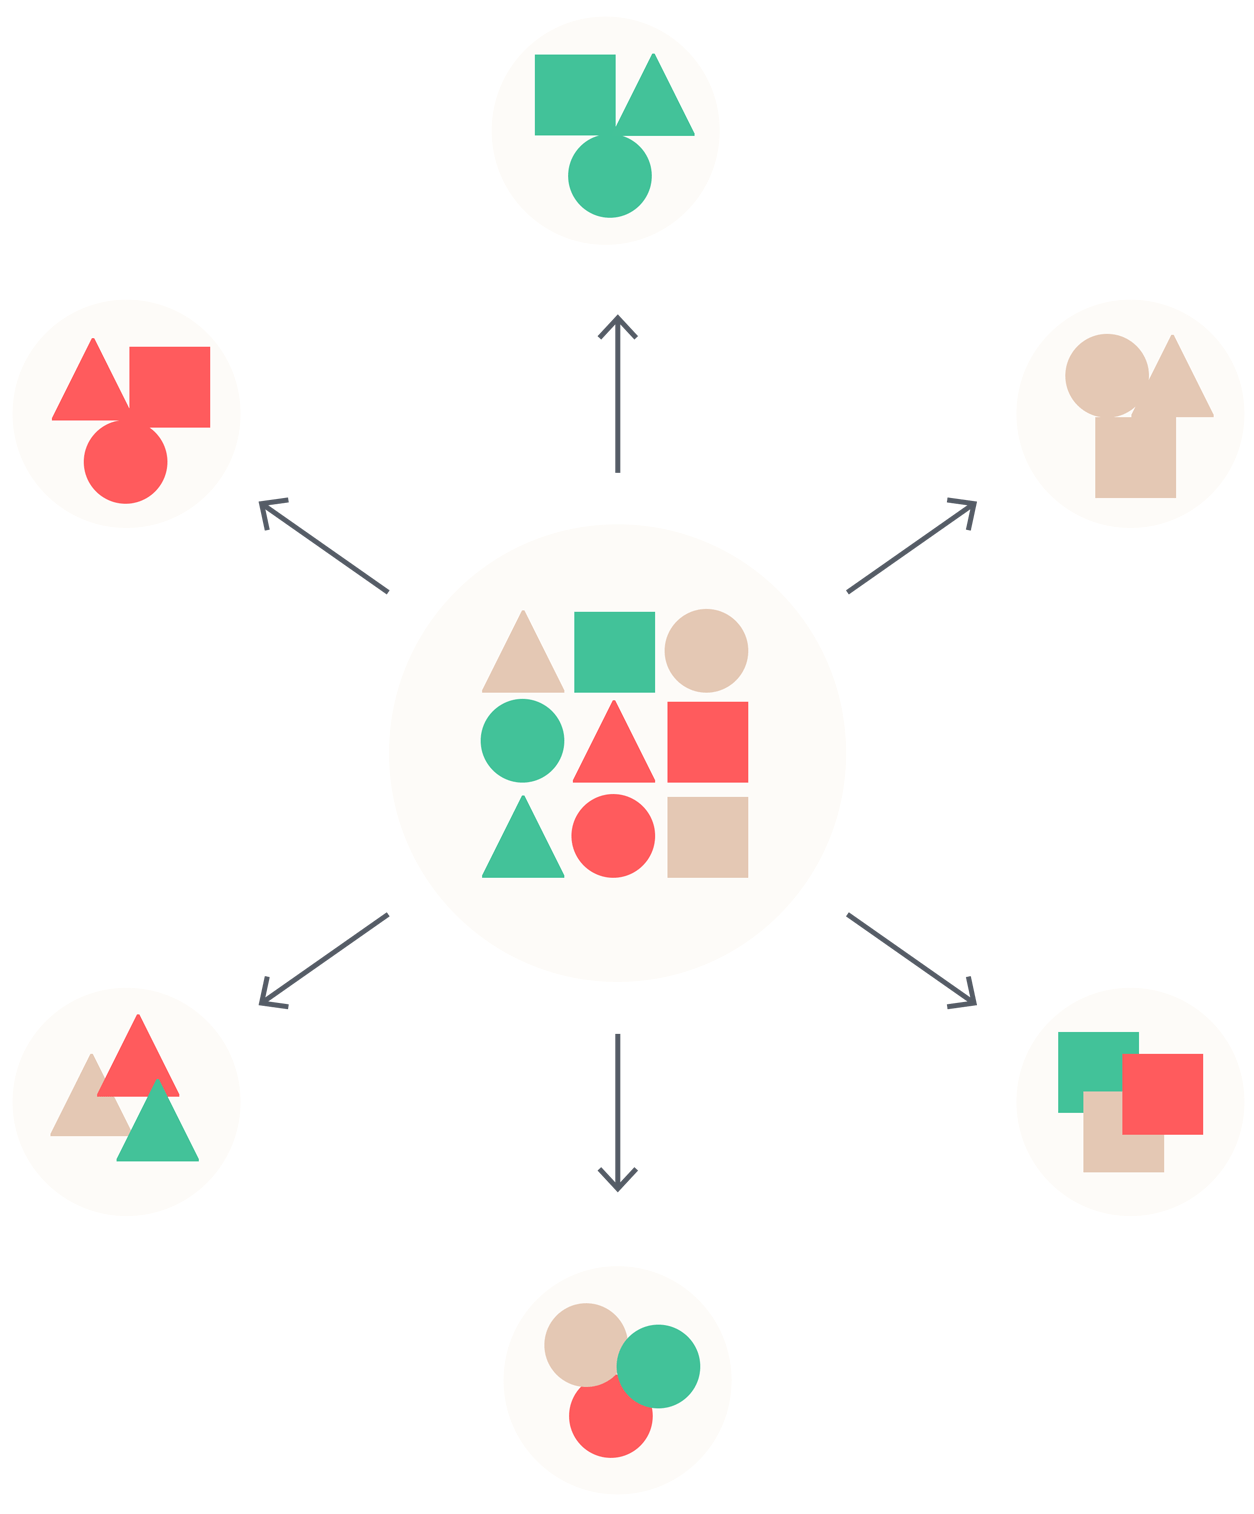 Segmentation allows you to divide your subscribers into logical, higher-converting groupings